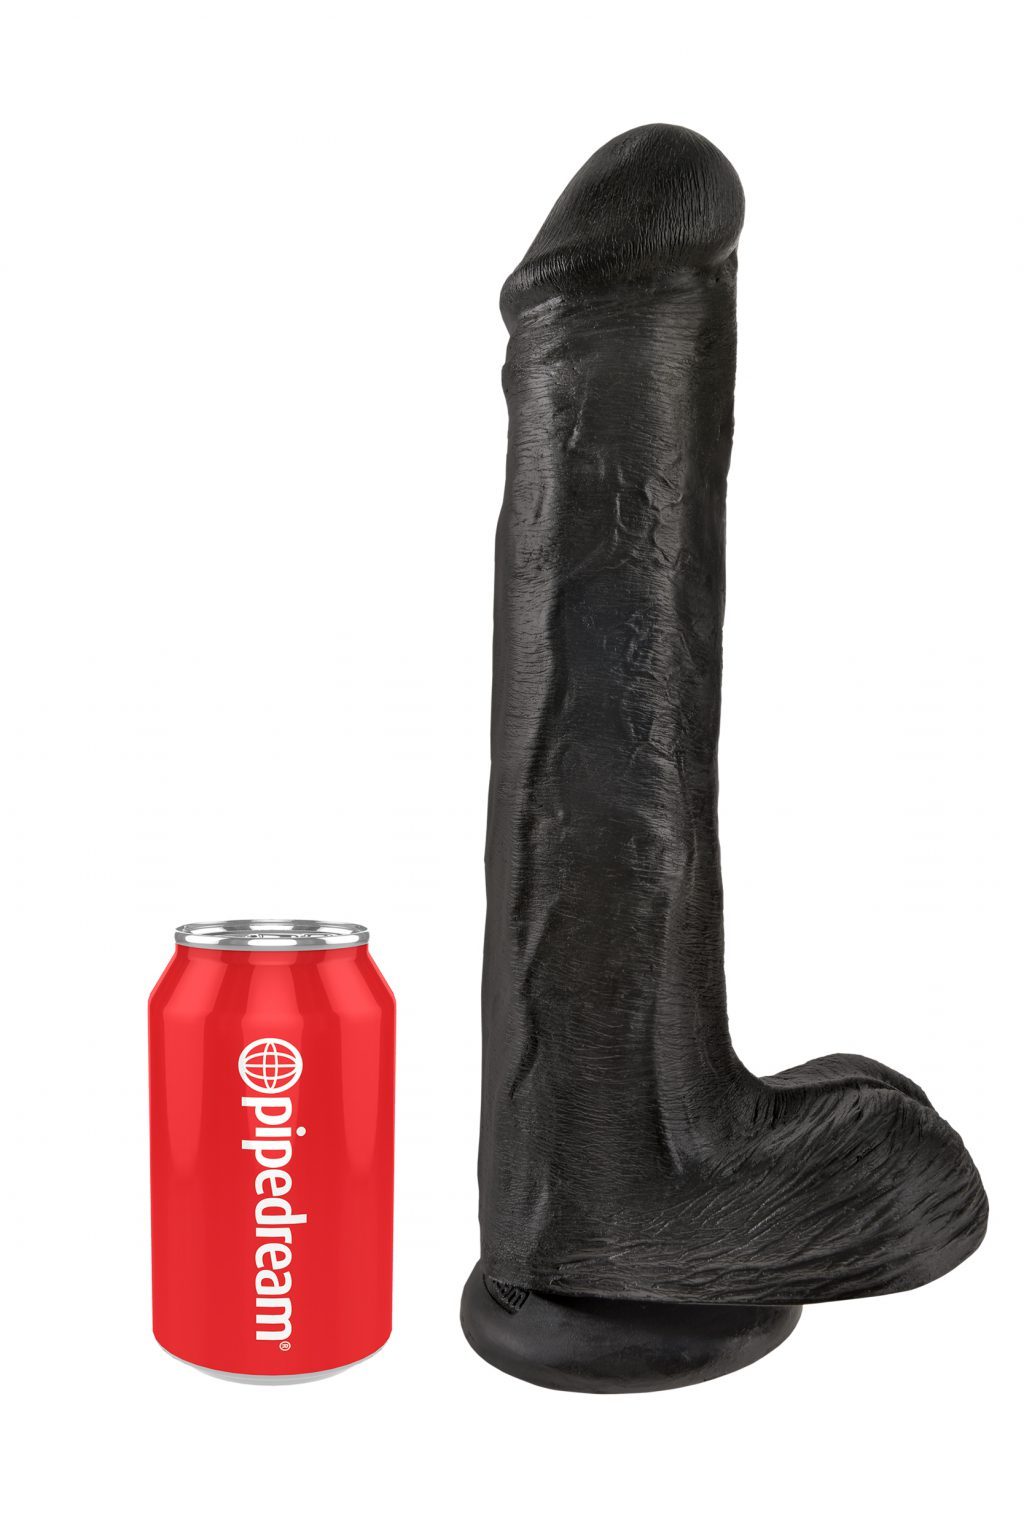 Cock with Balls 33 cm - Black